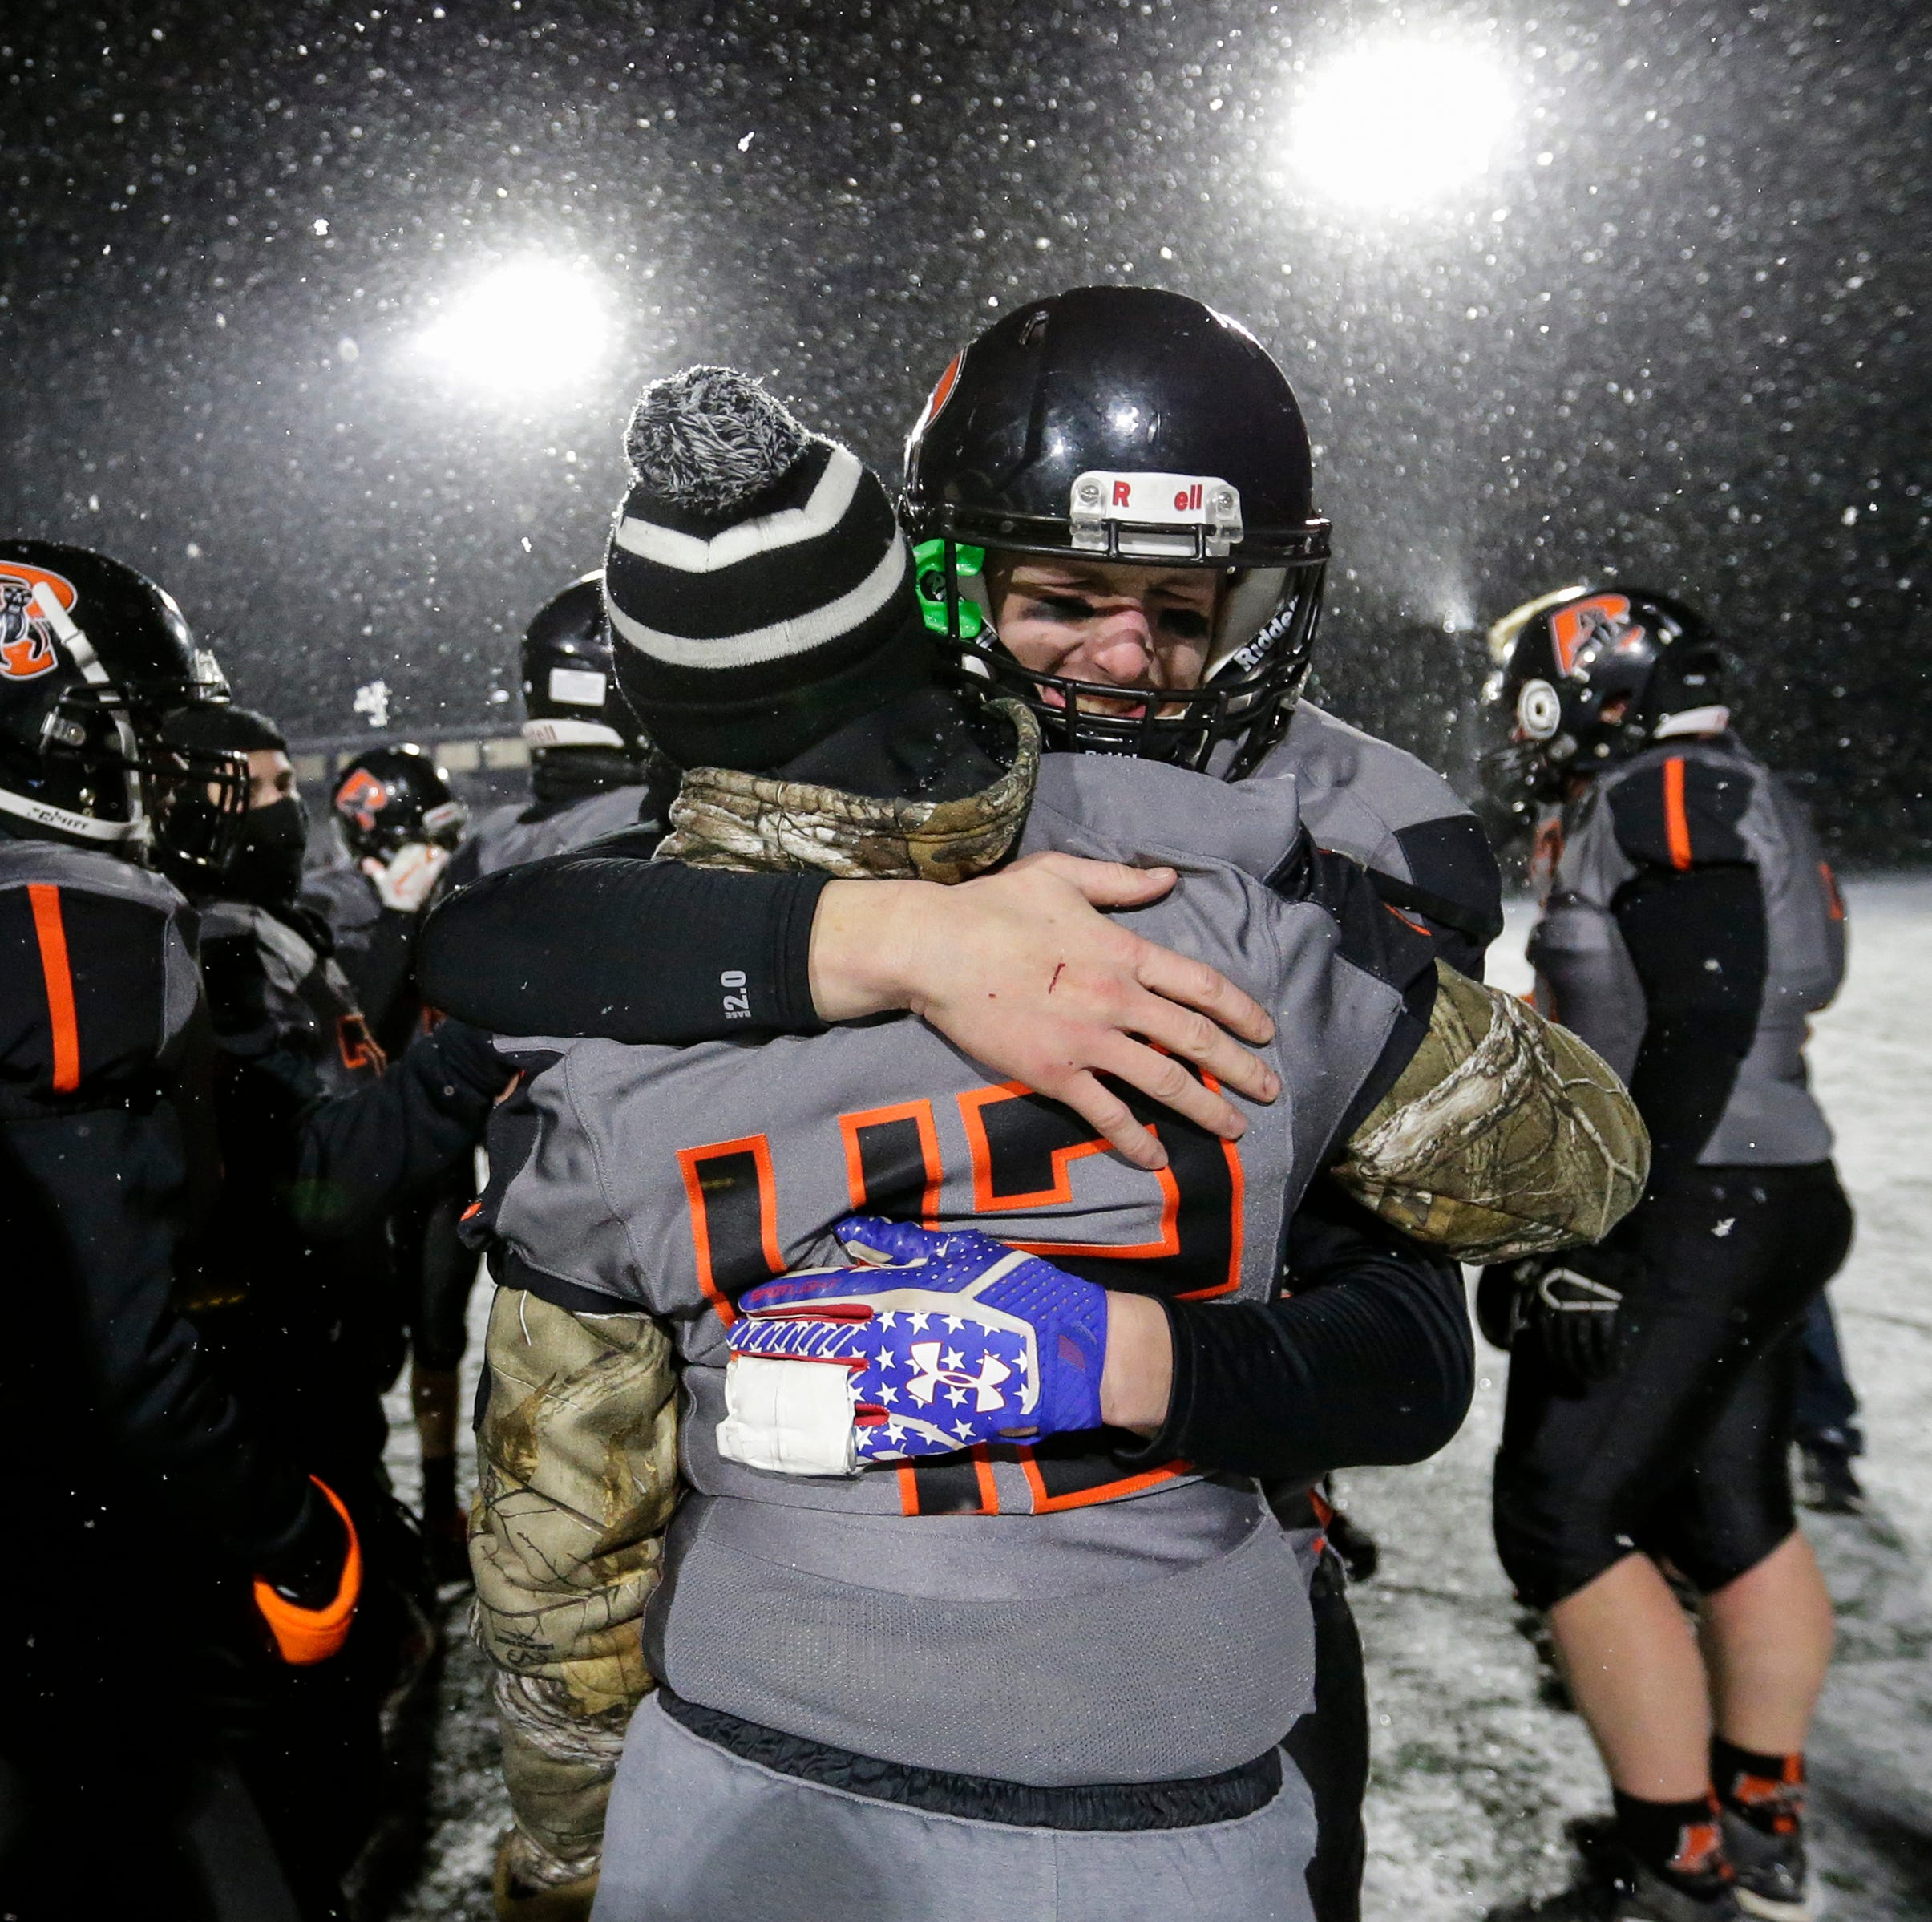 WIAA football: Reedsville's magical season ends, but not without hope